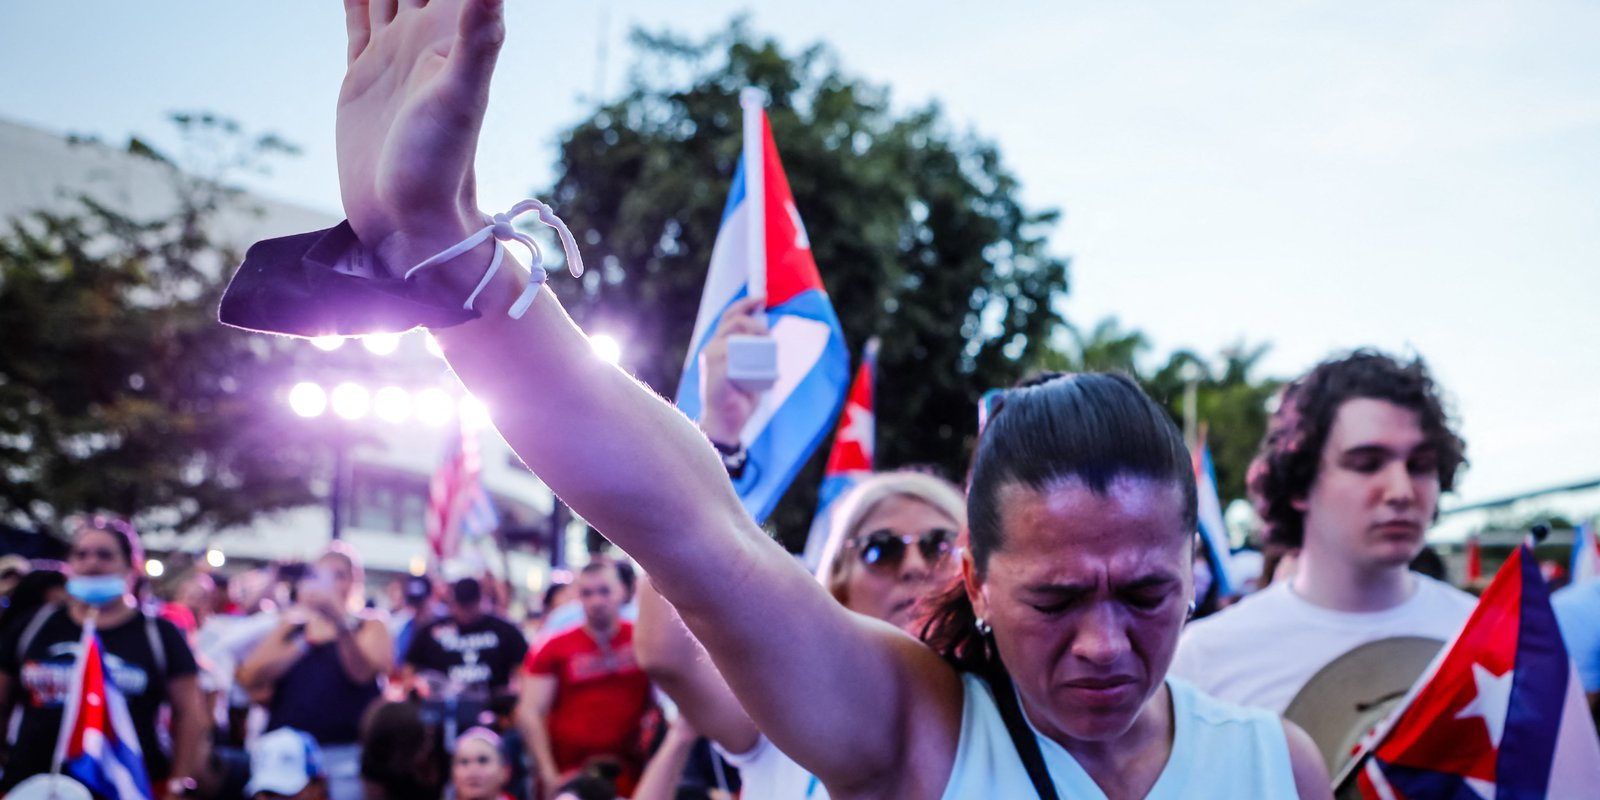 Image — A woman prays during a rally in support of Cubans demonstrating against their governmentat Freedom Tower in Miami, USA. Photo by EVA MARIE UZCATEGUI/AFP via Getty Images.